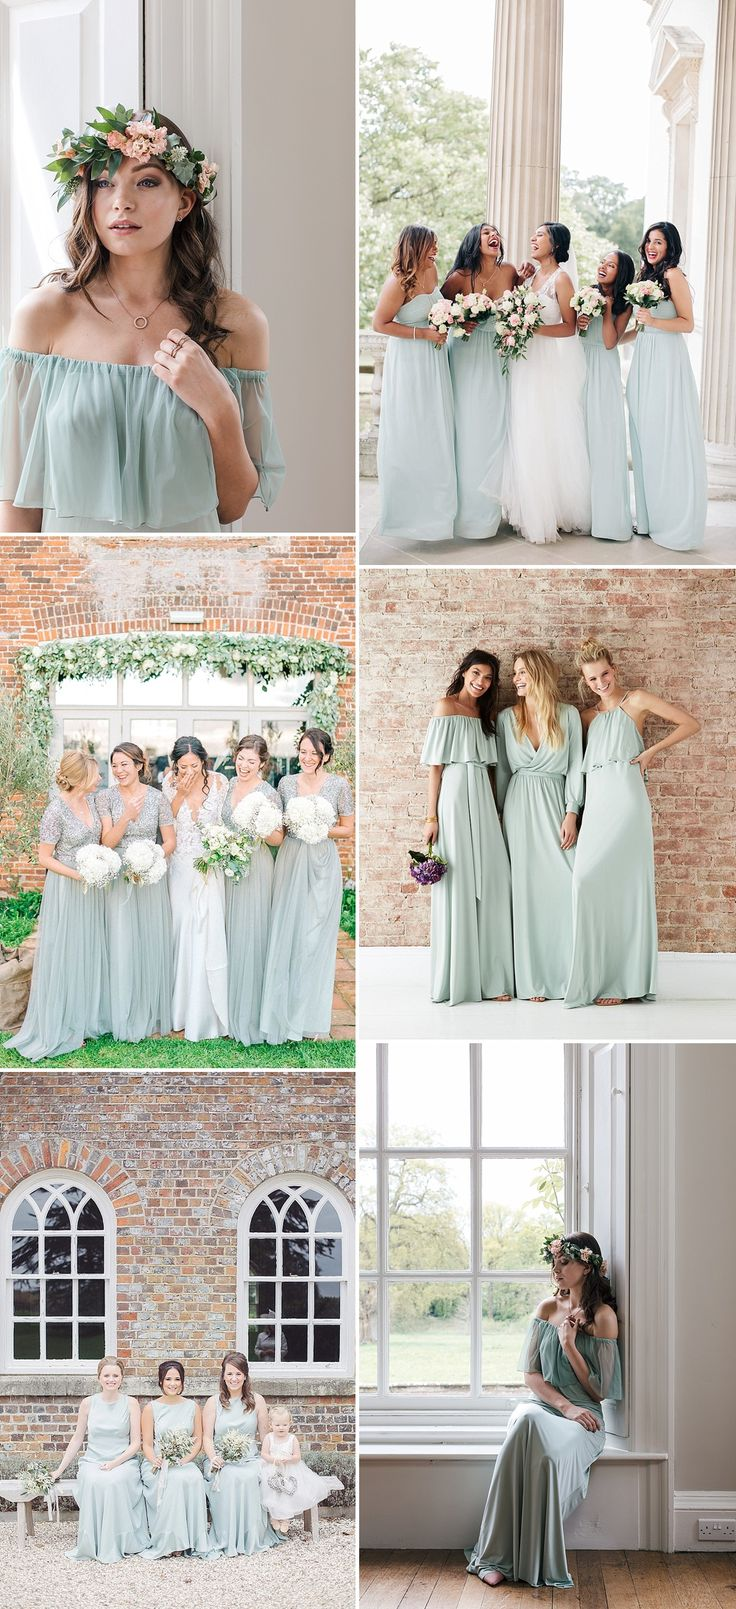 Best 25 sage bridesmaid dresses ideas on pinterest green best 25 sage bridesmaid dresses ideas on pinterest green bridesmaid dresses wedding colors green and sage x3 ombrellifo Gallery